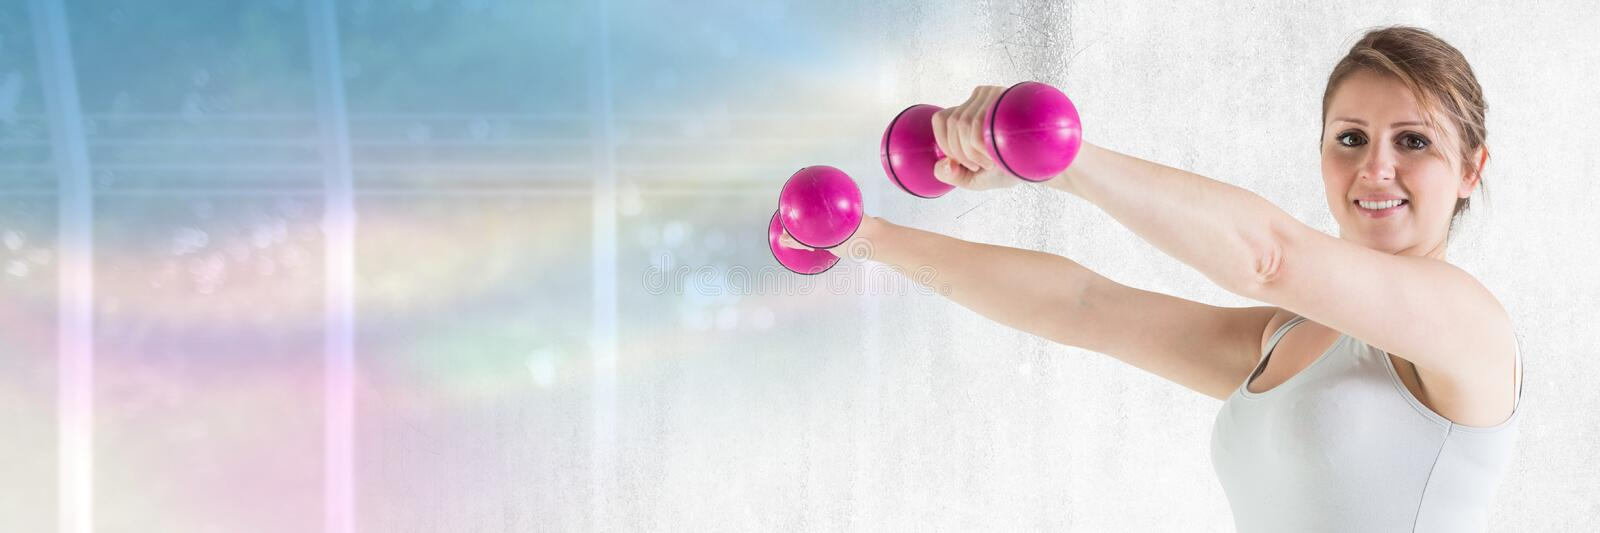 Slim healthy woman holding weights royalty free stock photo